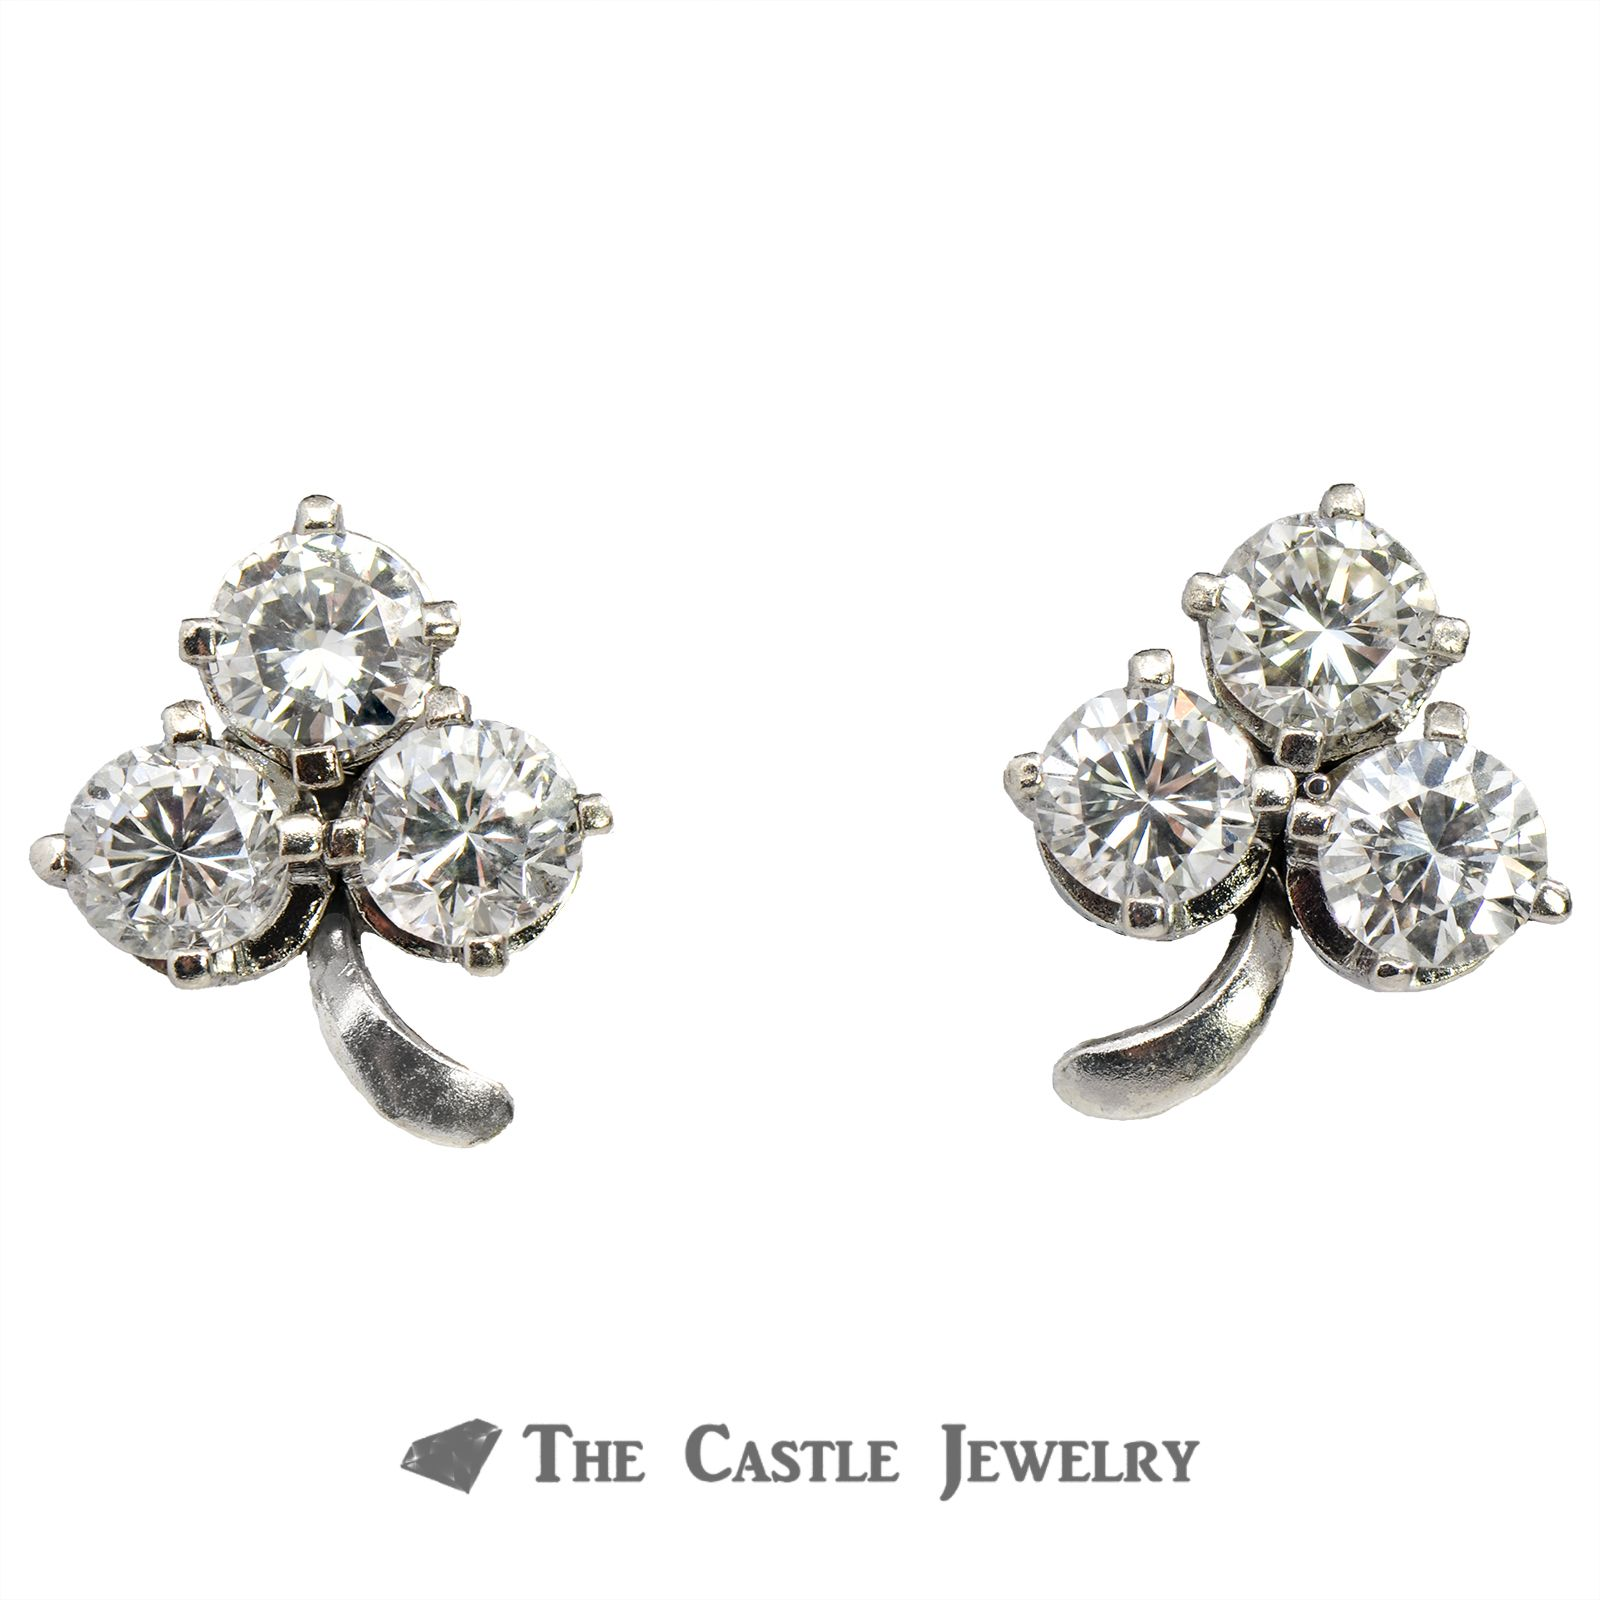 340b1292d8a078 3 Leaf Clover Earrings of 1.38cttw Round Brilliant Cut Diamonds in 10K  White Gold